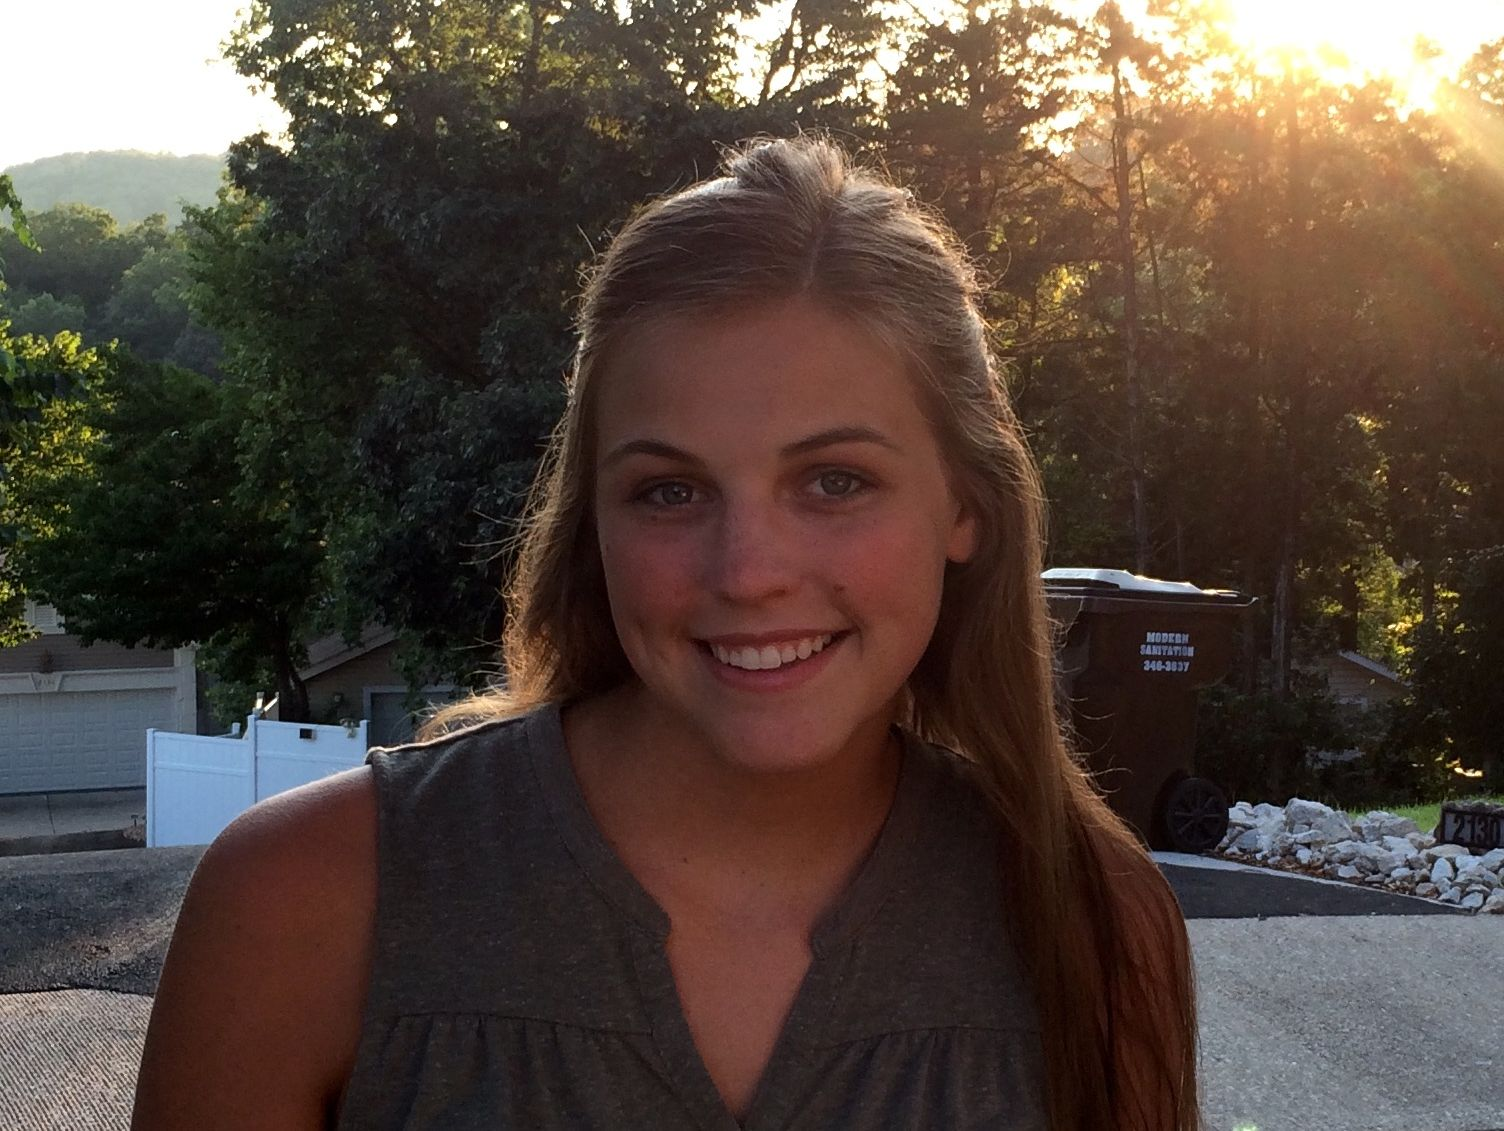 Kelsey Siemons, from Tucson Catalina Foothills High School, is Arizona Sports Awards' High Achiever of the Week for Dec. 17-24.